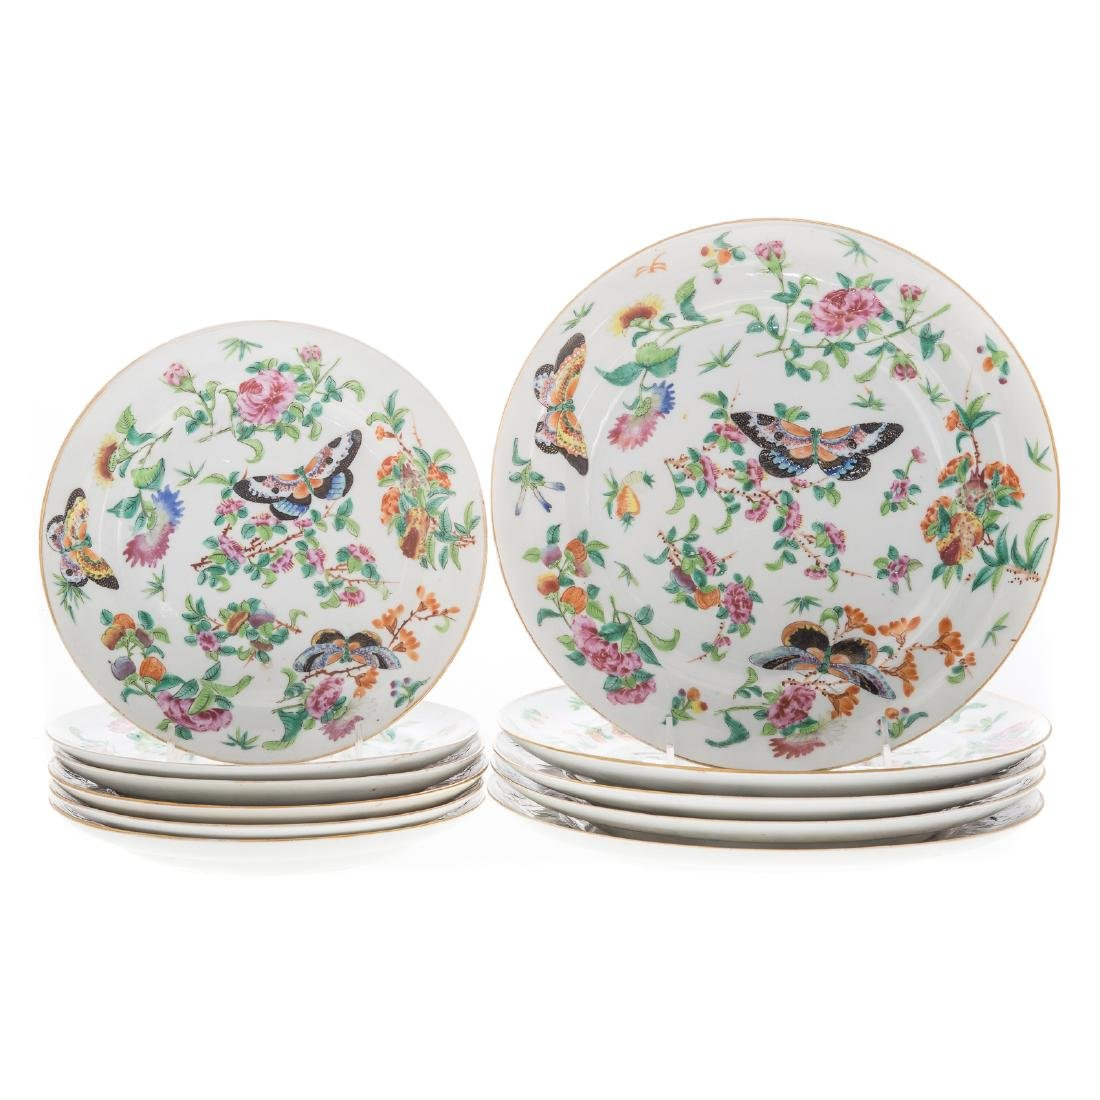 11 Chinese Export Famille Rose plates